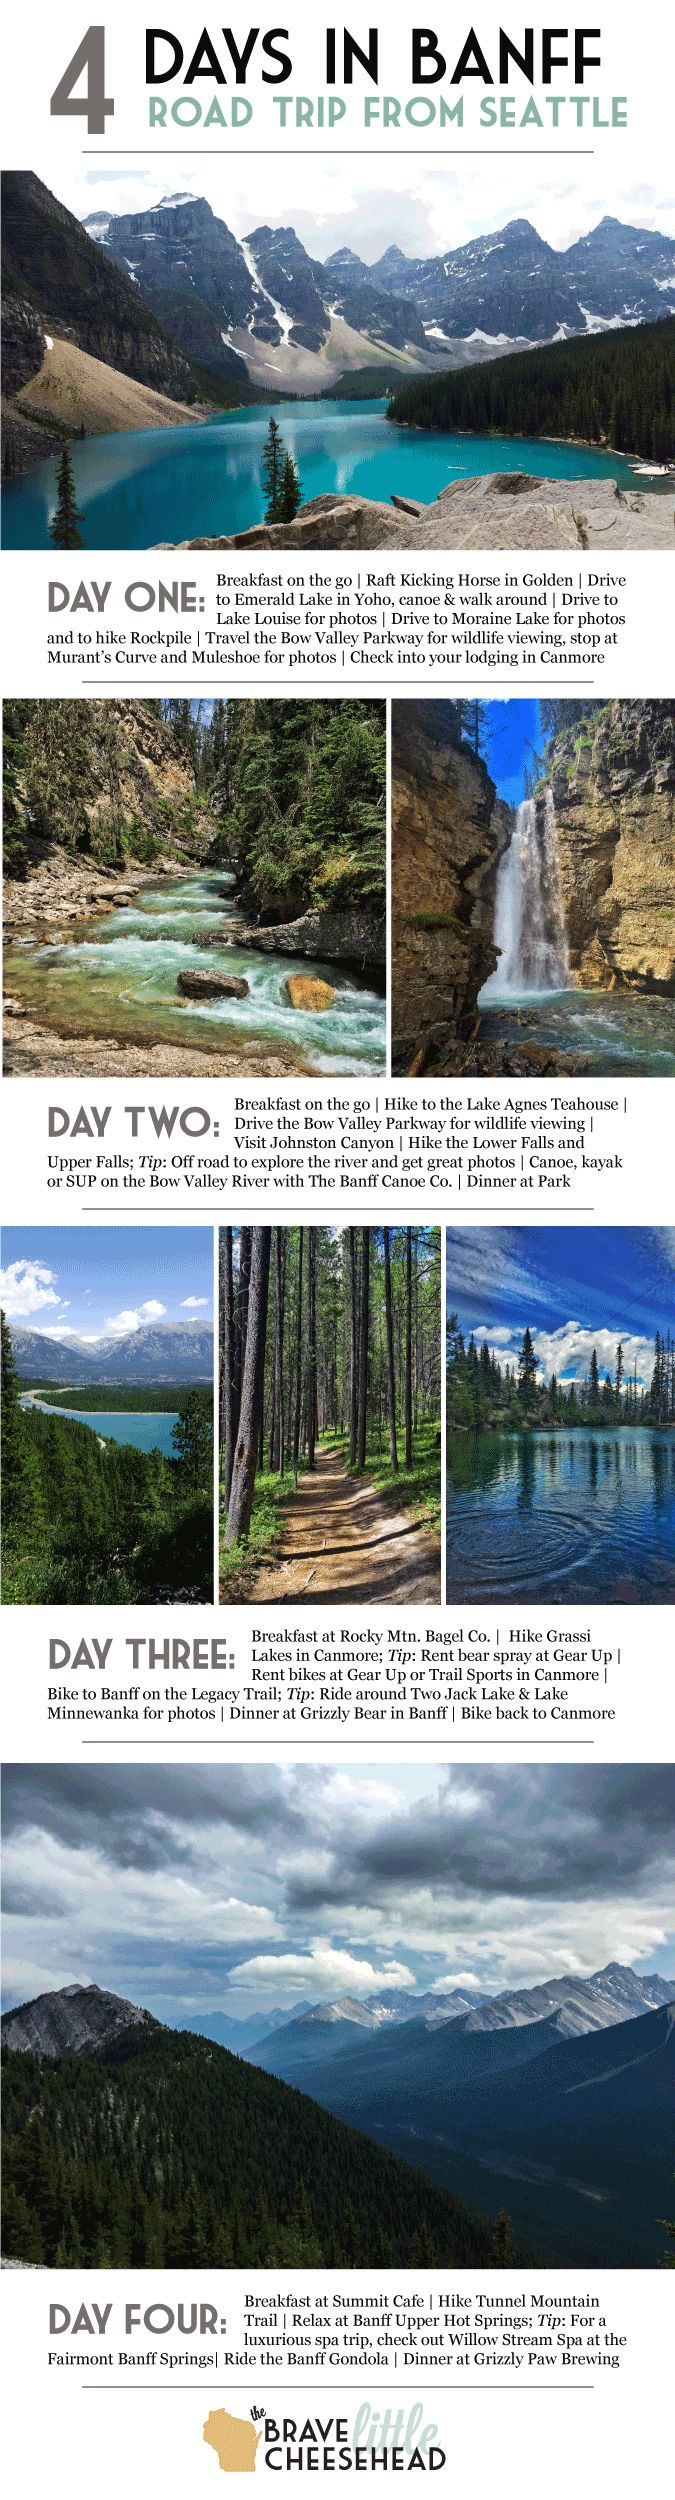 Four-day Banff National Park itinerary, a summer road trip from Seattle to Canada